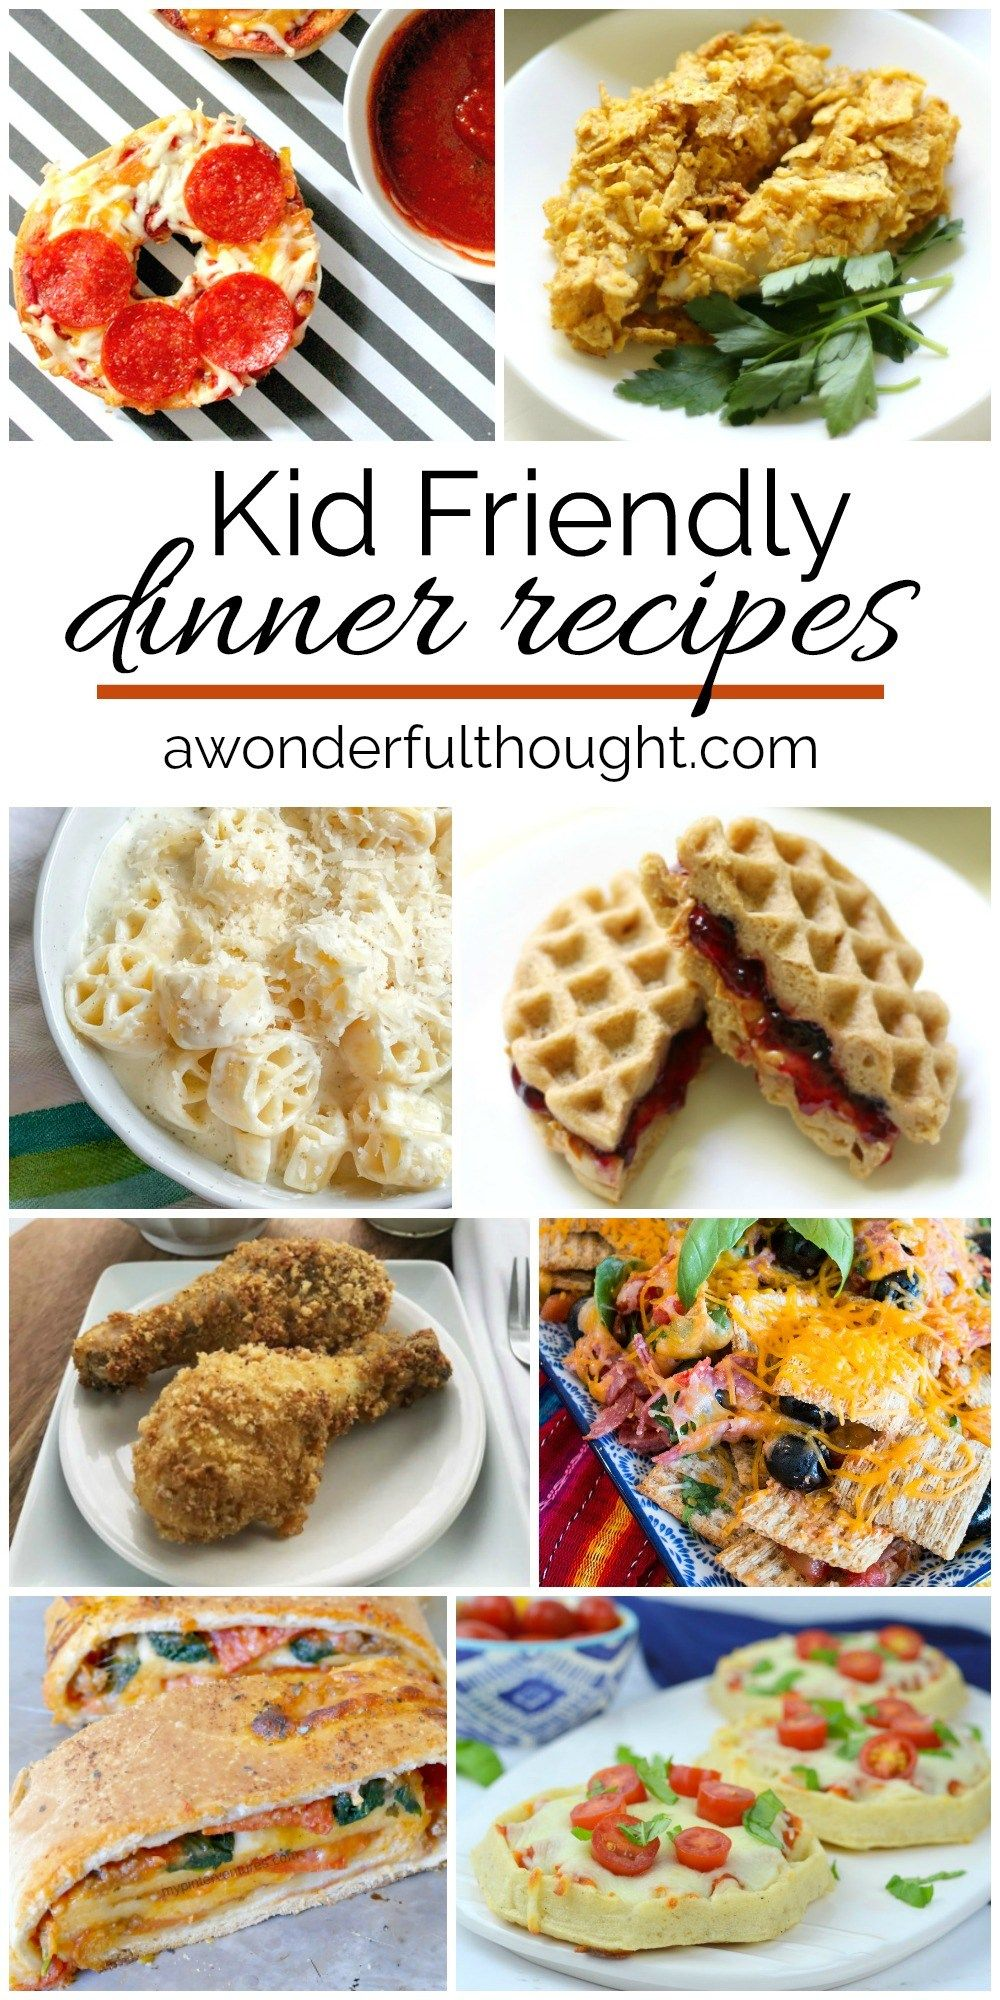 Kid Friendly Dinner Recipes images